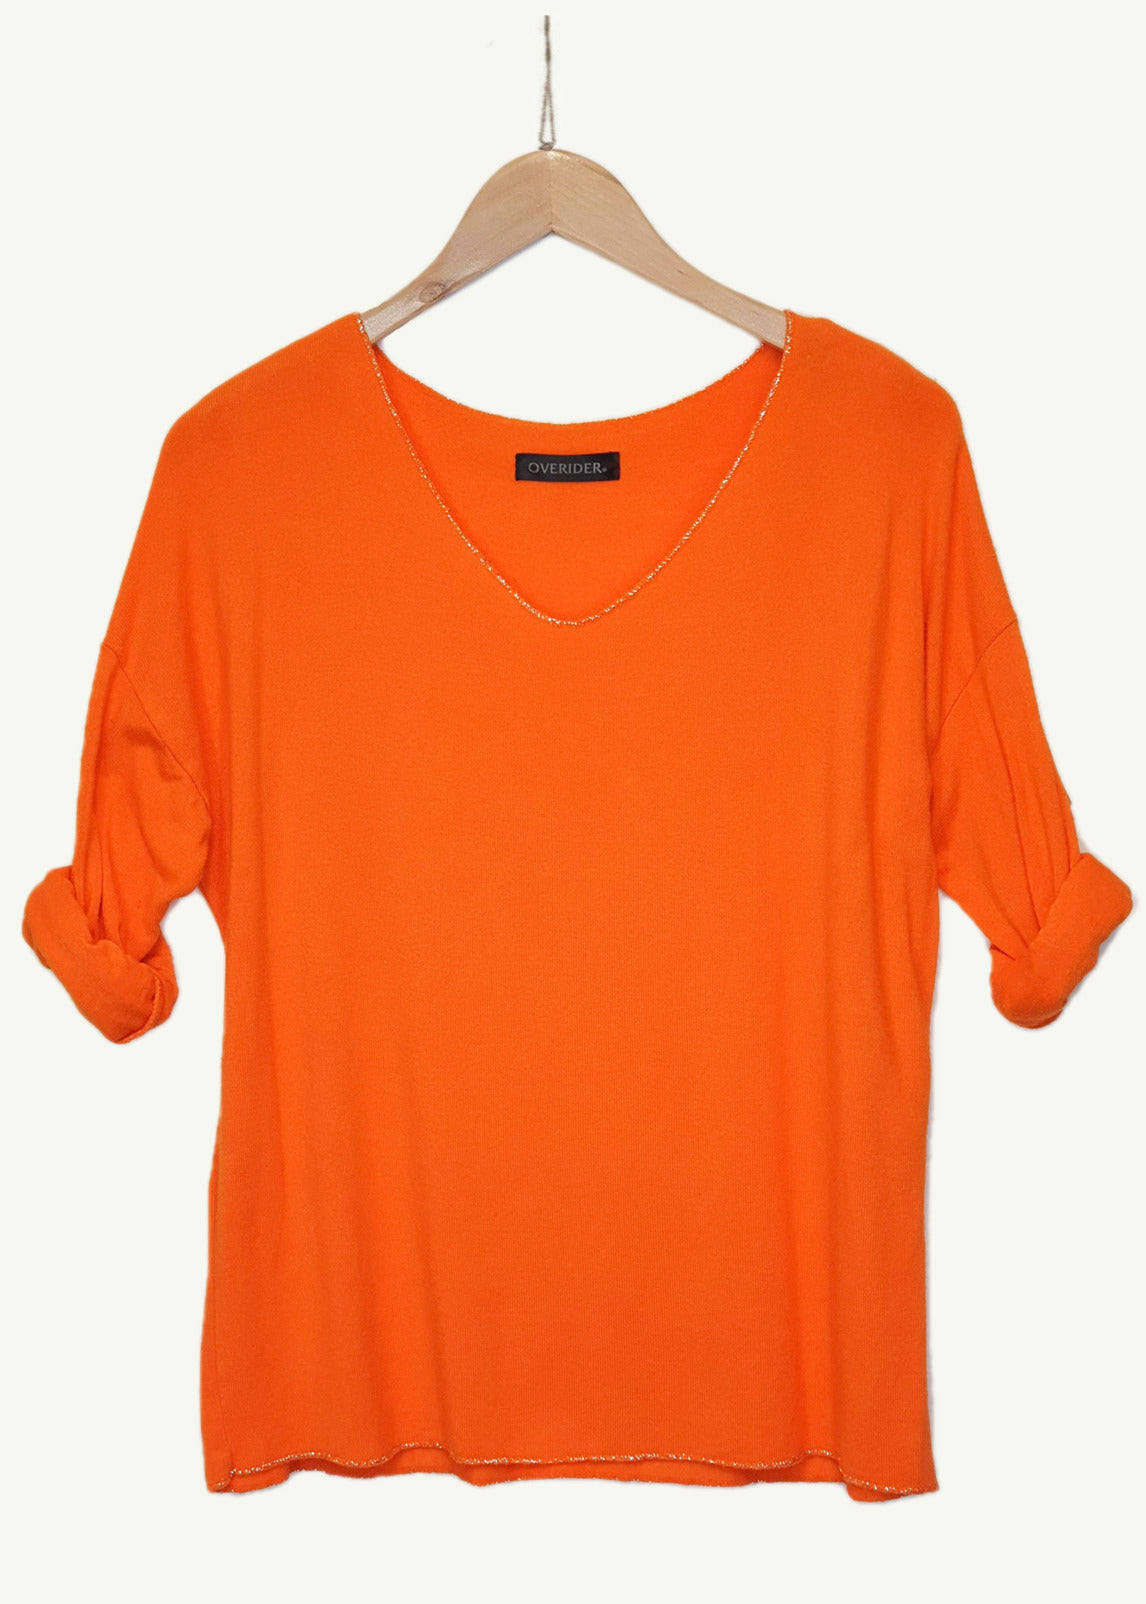 ELISE - 'V' Neck Sparkle  Knit Top - Orange